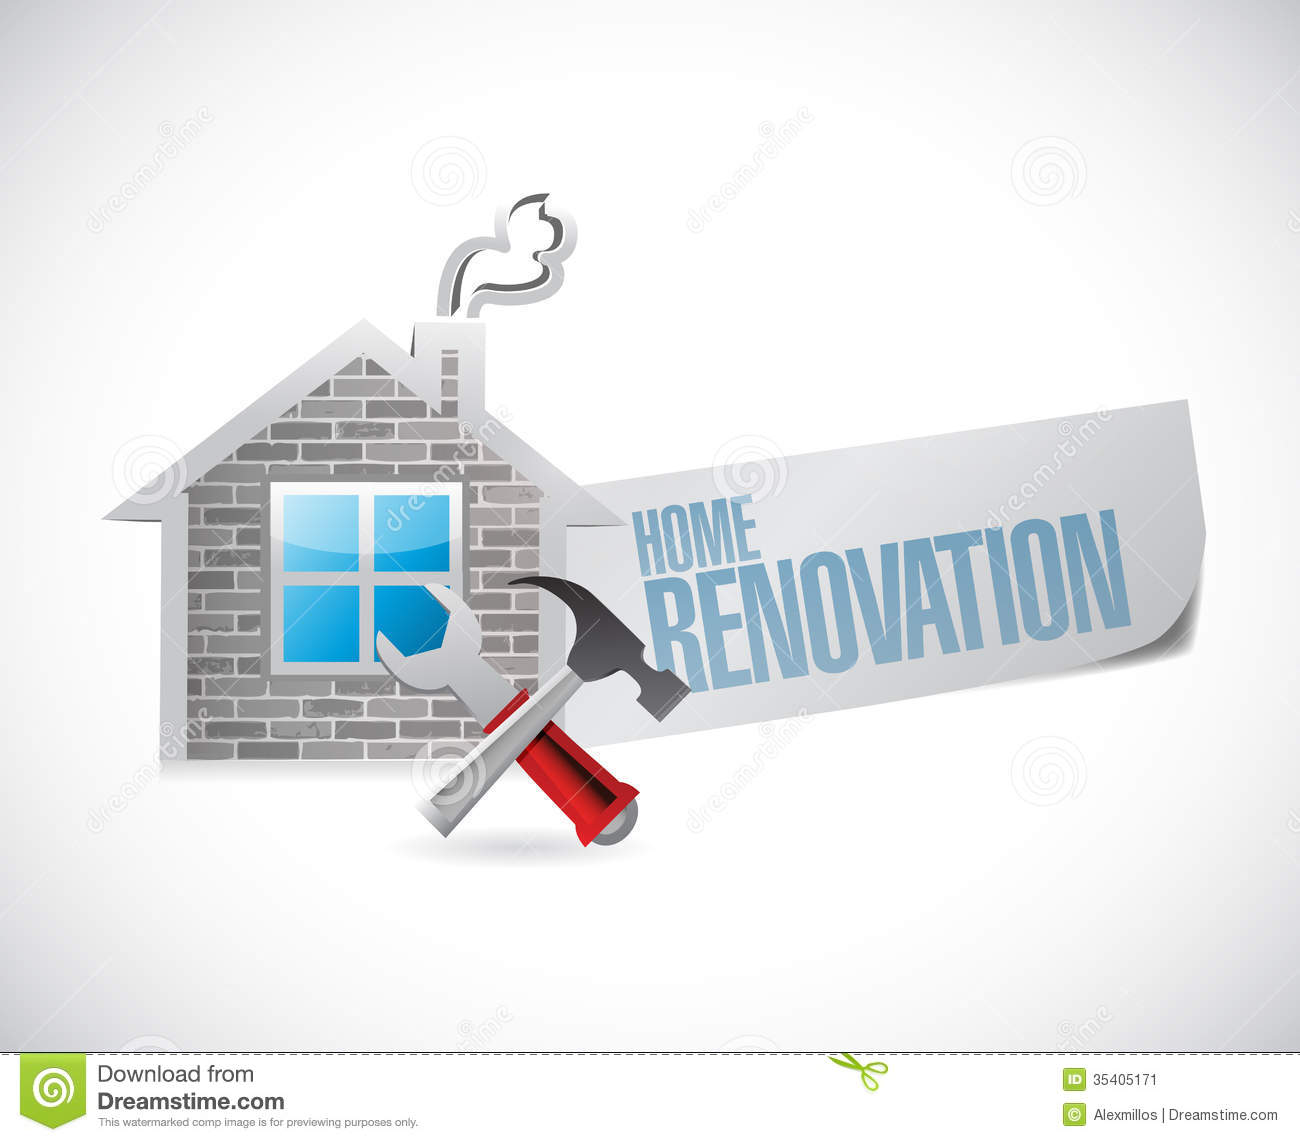 Home renovation symbol illustration design over a white background.